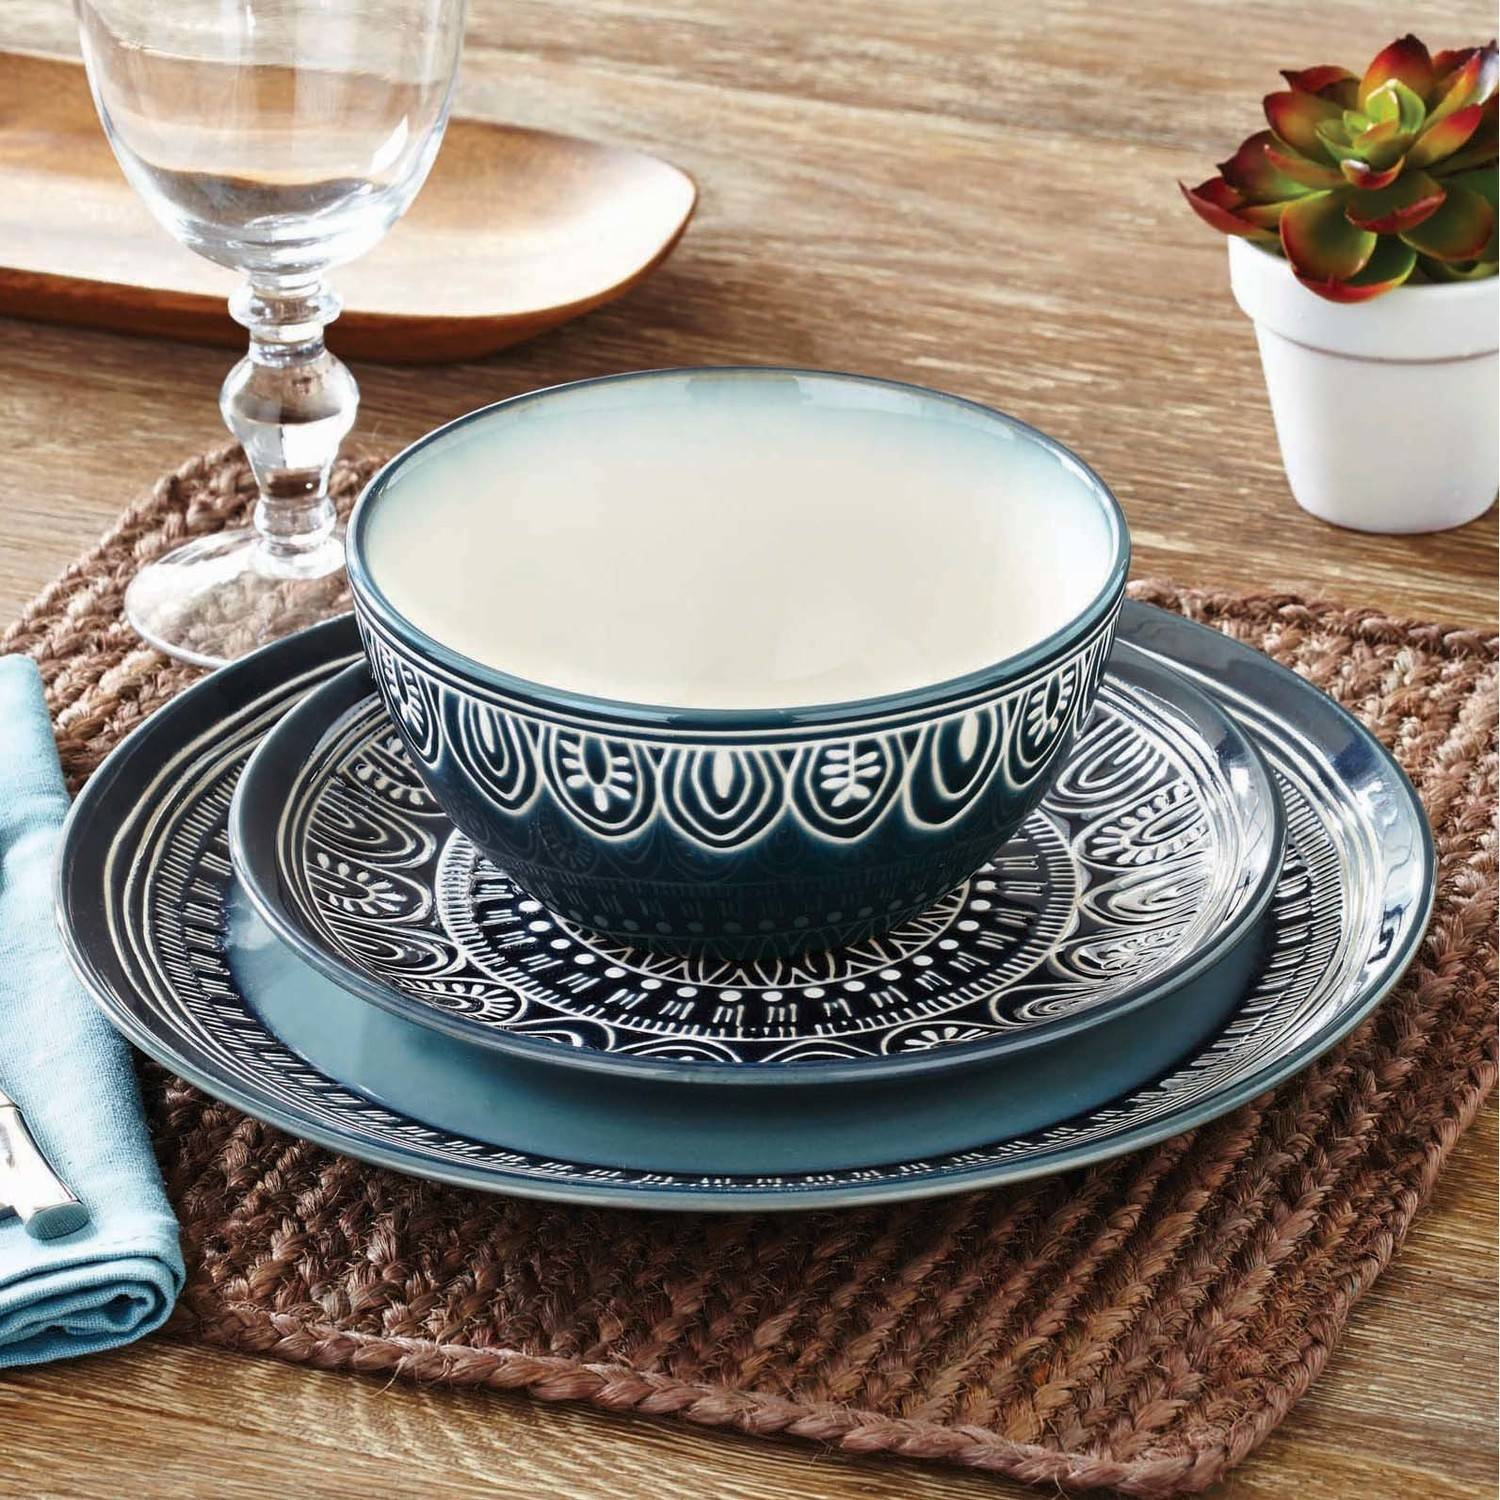 Better Homes U0026 Gardens Teal Medallion 12 Piece Dinnerware Set, Teal    Walmart.com